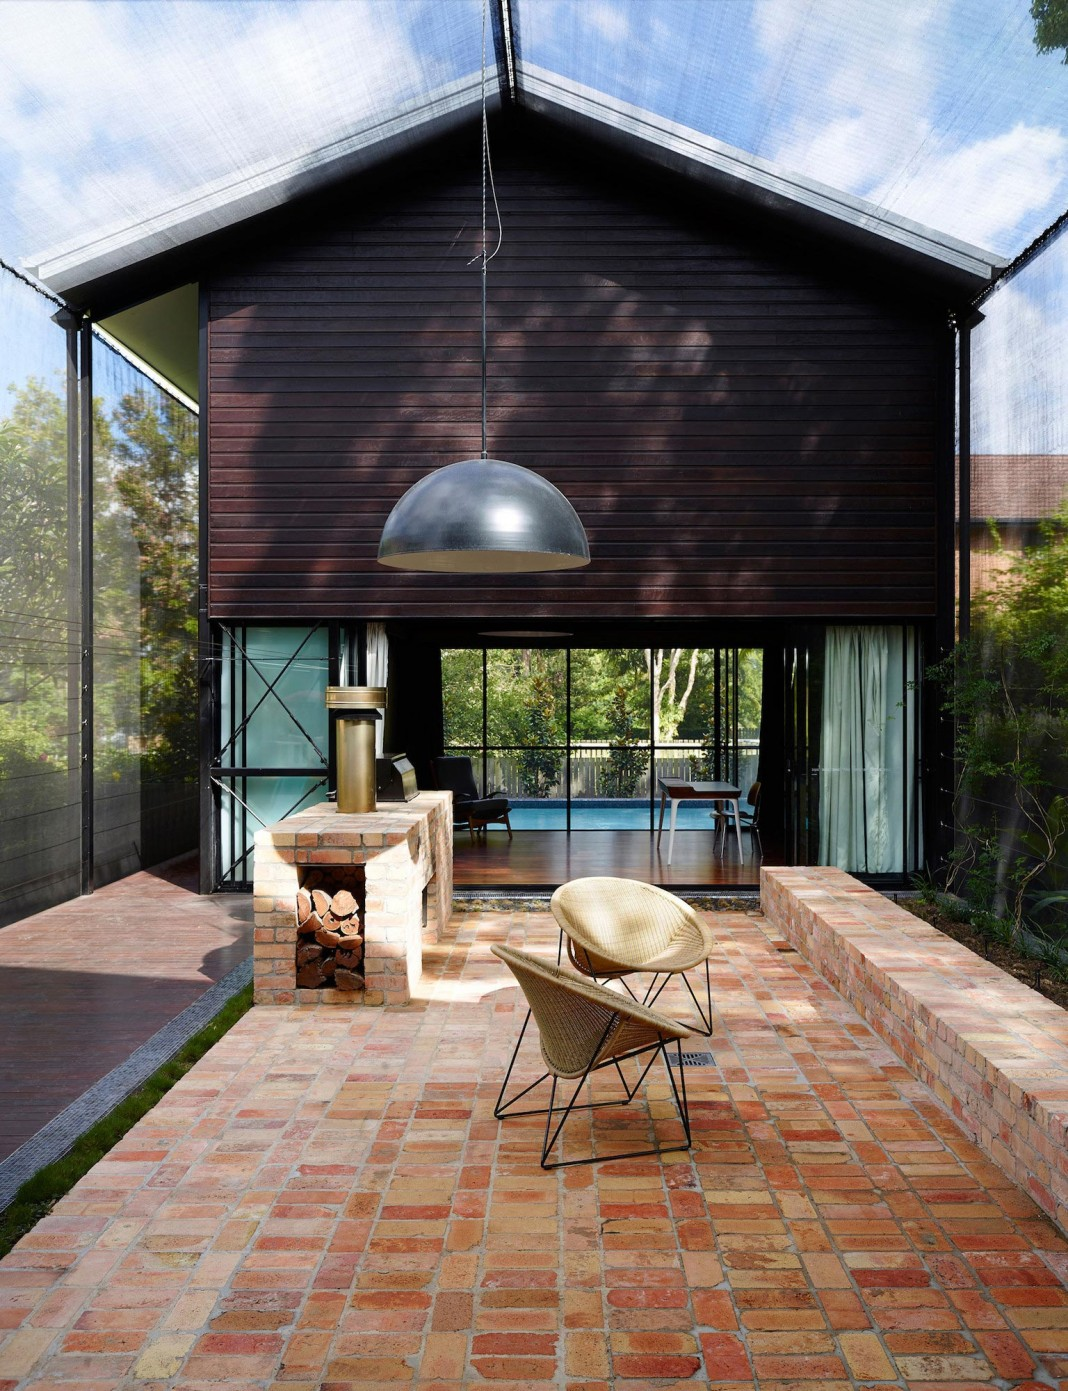 Oxlade Drive House by James Russell Architect